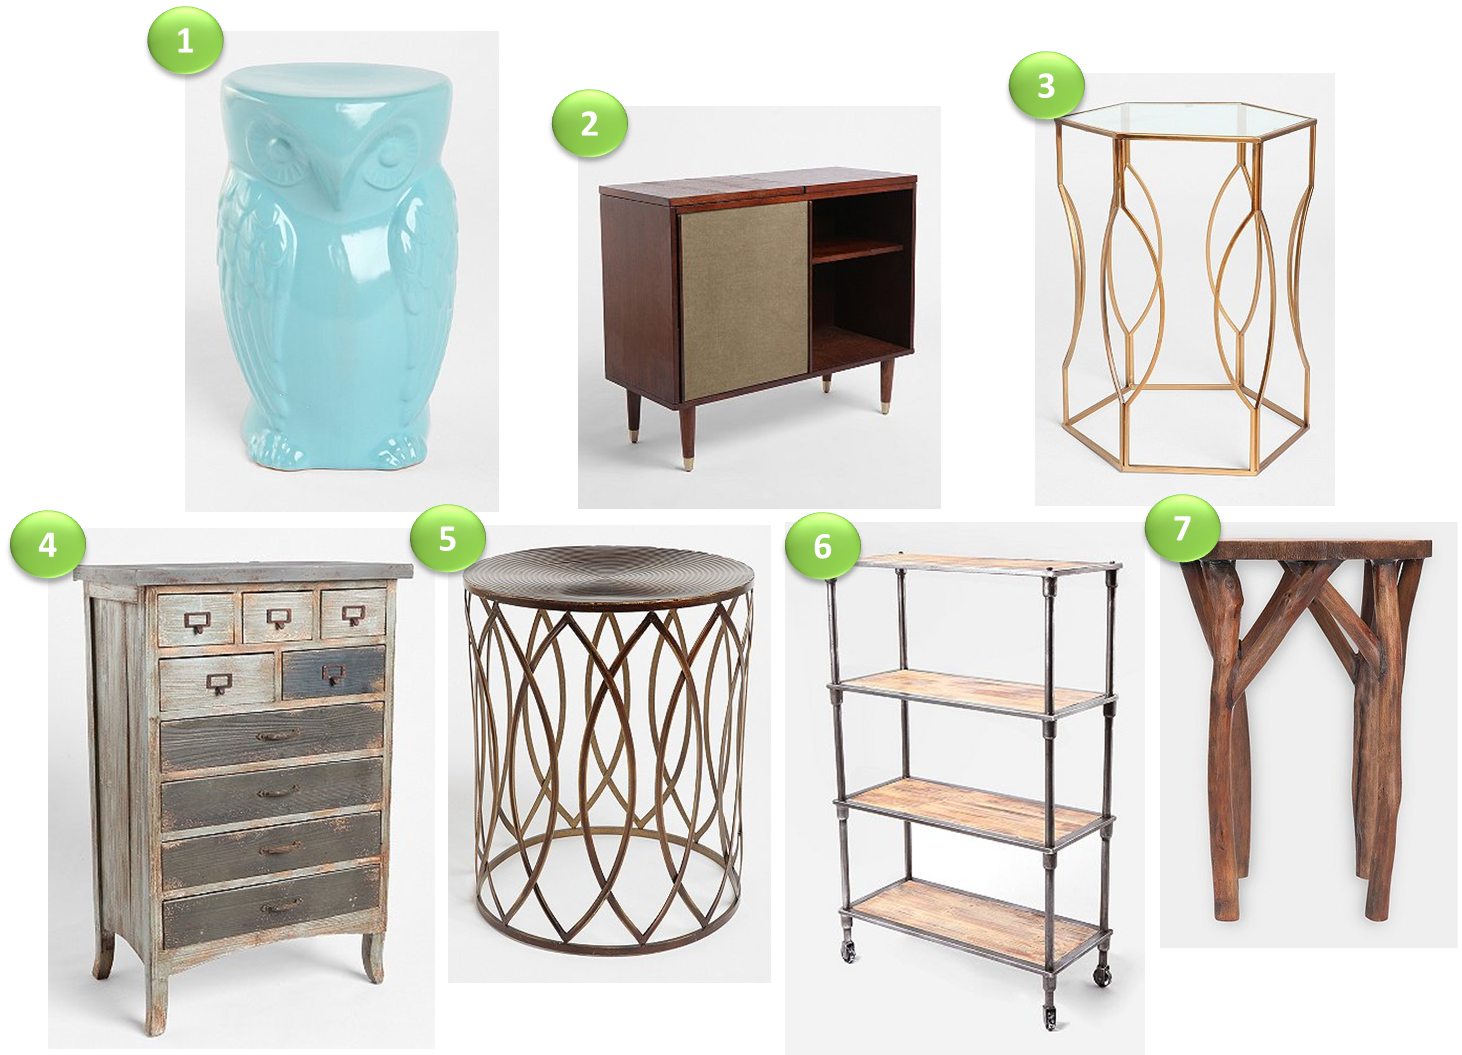 Cup Half Full: Inexpensive Furniture Finds